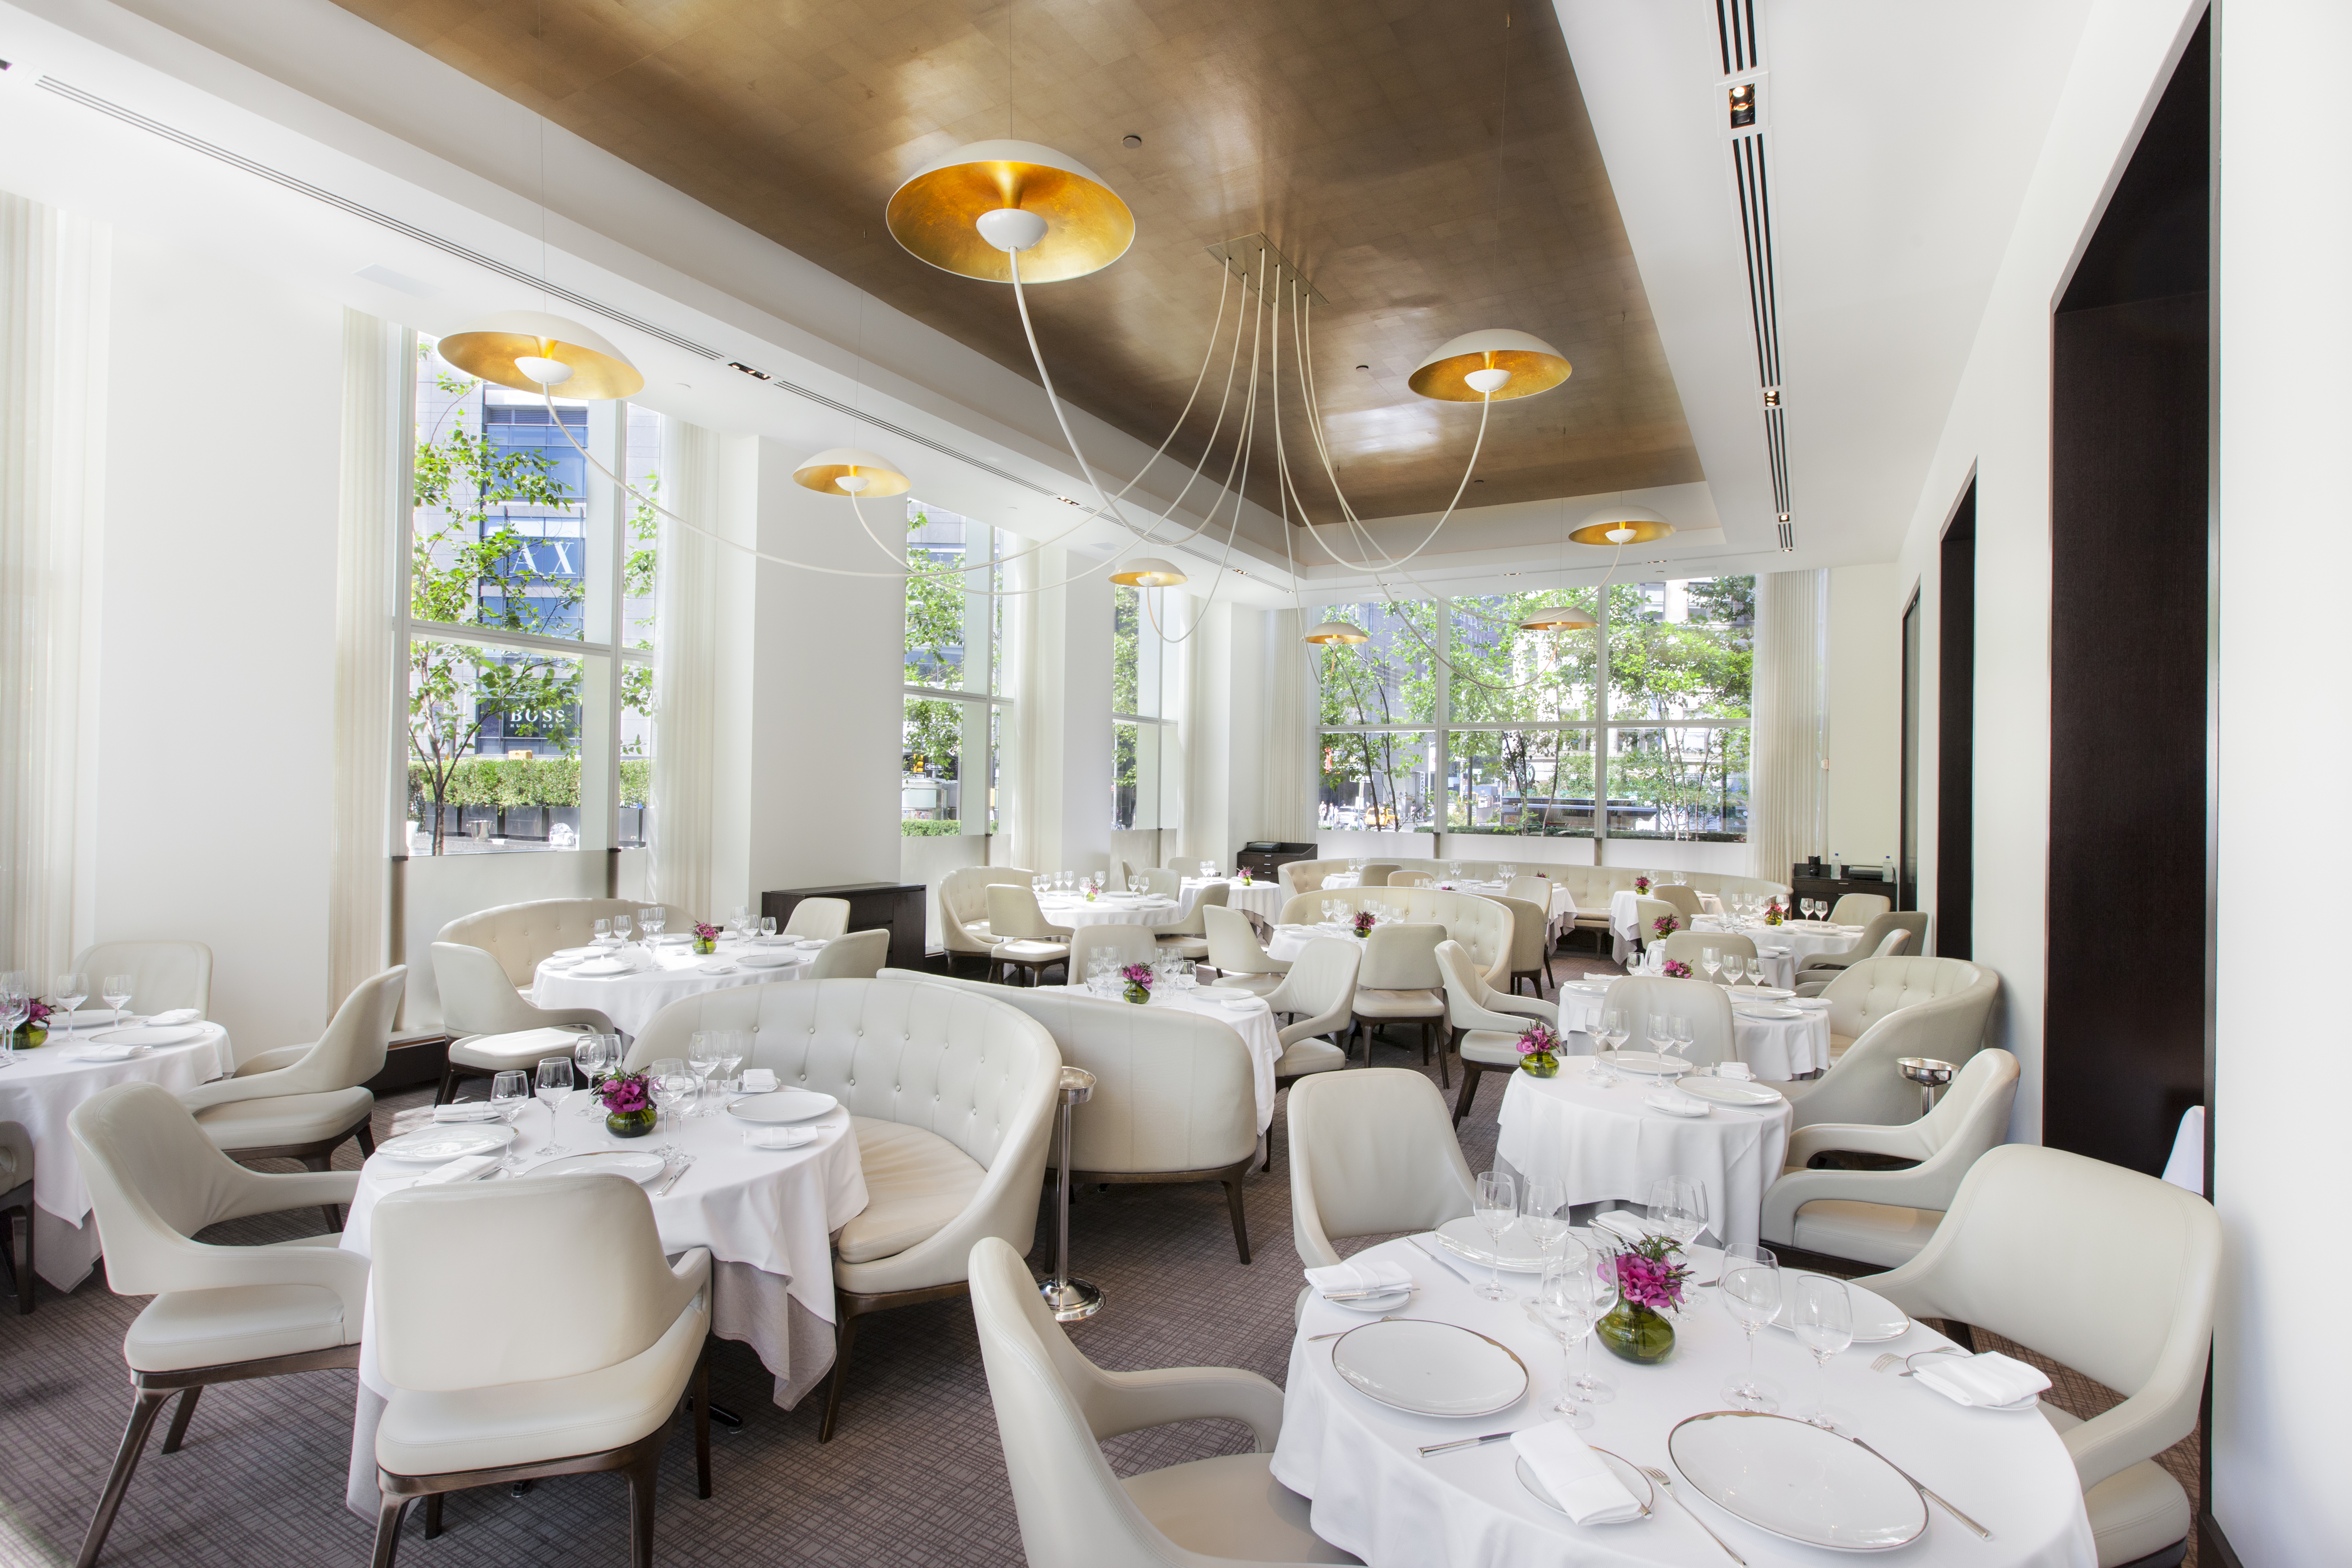 The Jean-Georges dining room, with plush cream chairs set at tables with white tablecloths